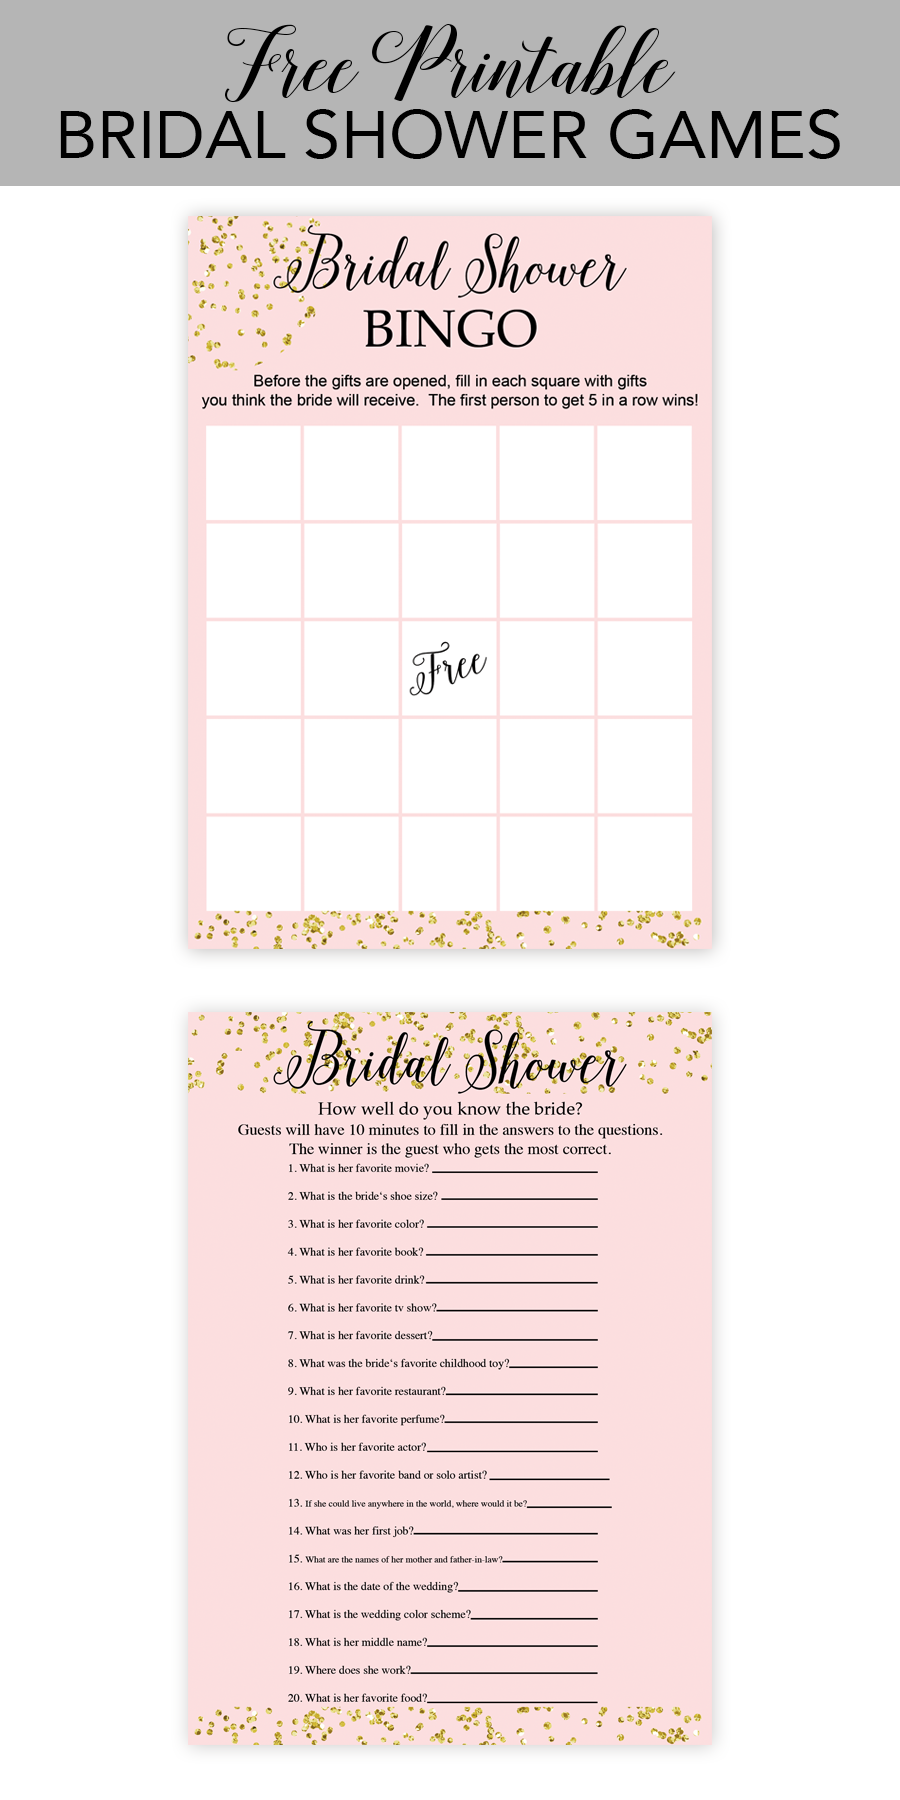 picture relating to Bridal Shower Purse Game Free Printable known as Totally free Printable Bridal Shower Game titles - Chicfetti